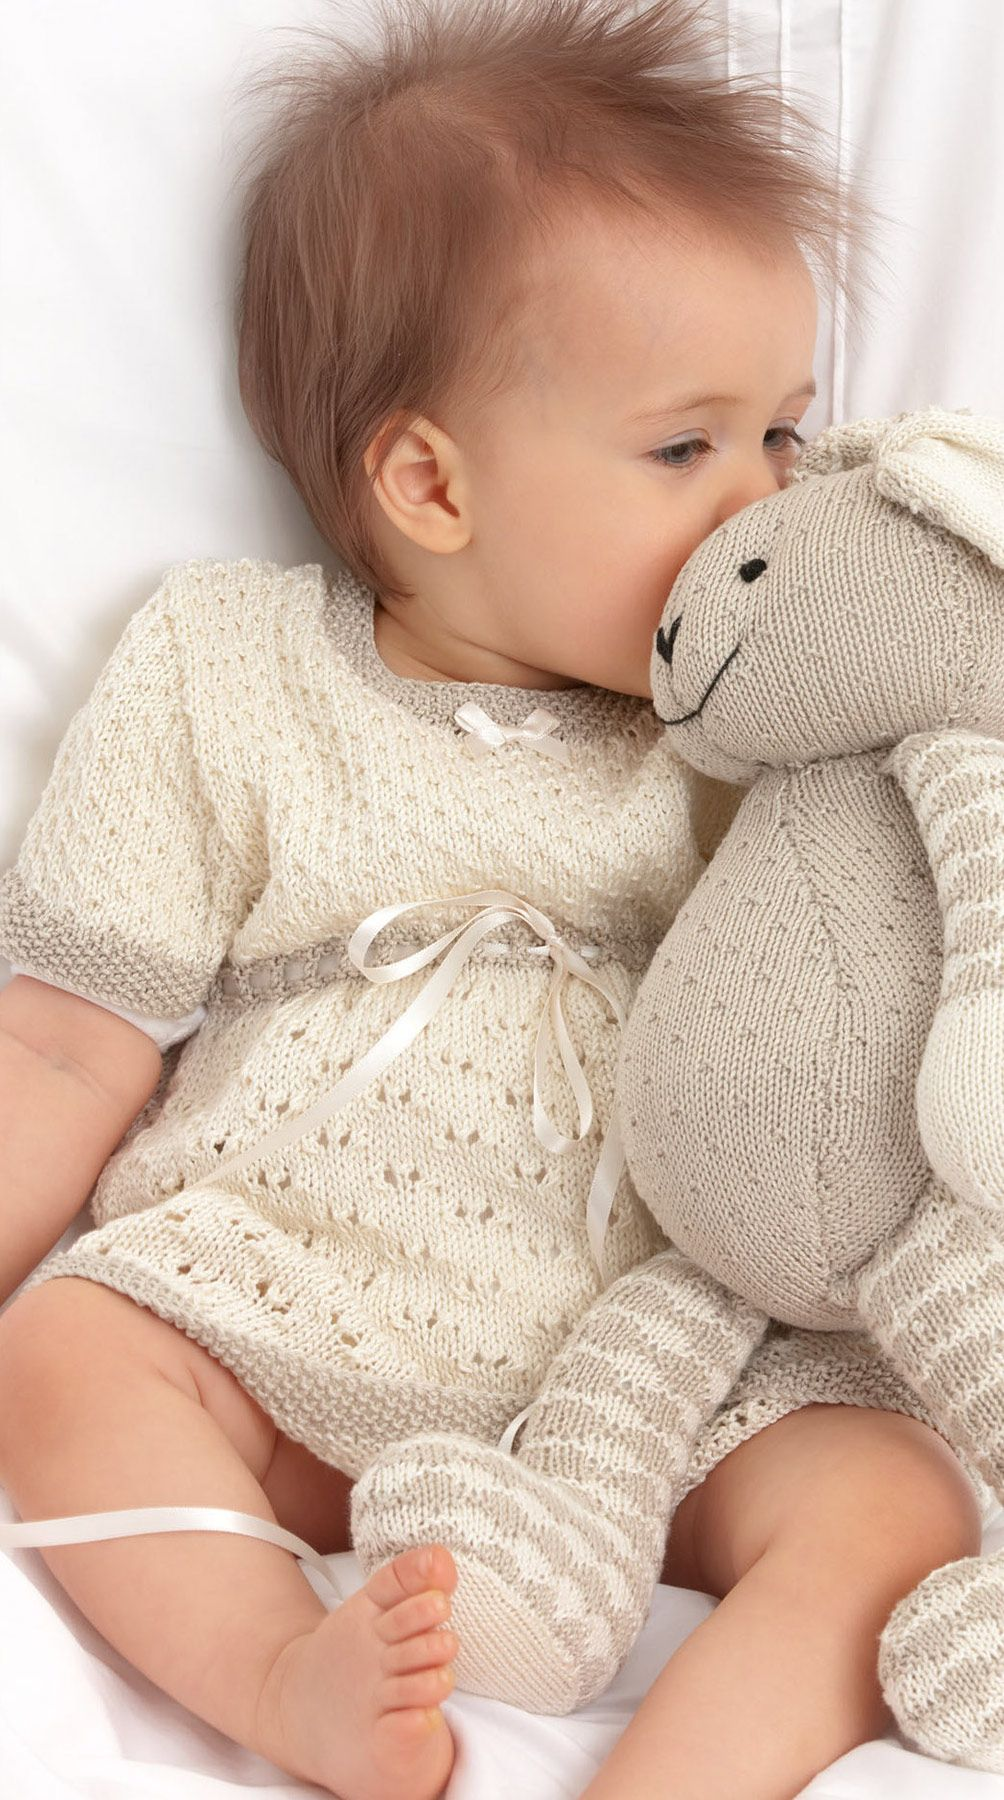 Baby Lace Dress free knitting pattern Knit~Babies/Children Pinterest La...